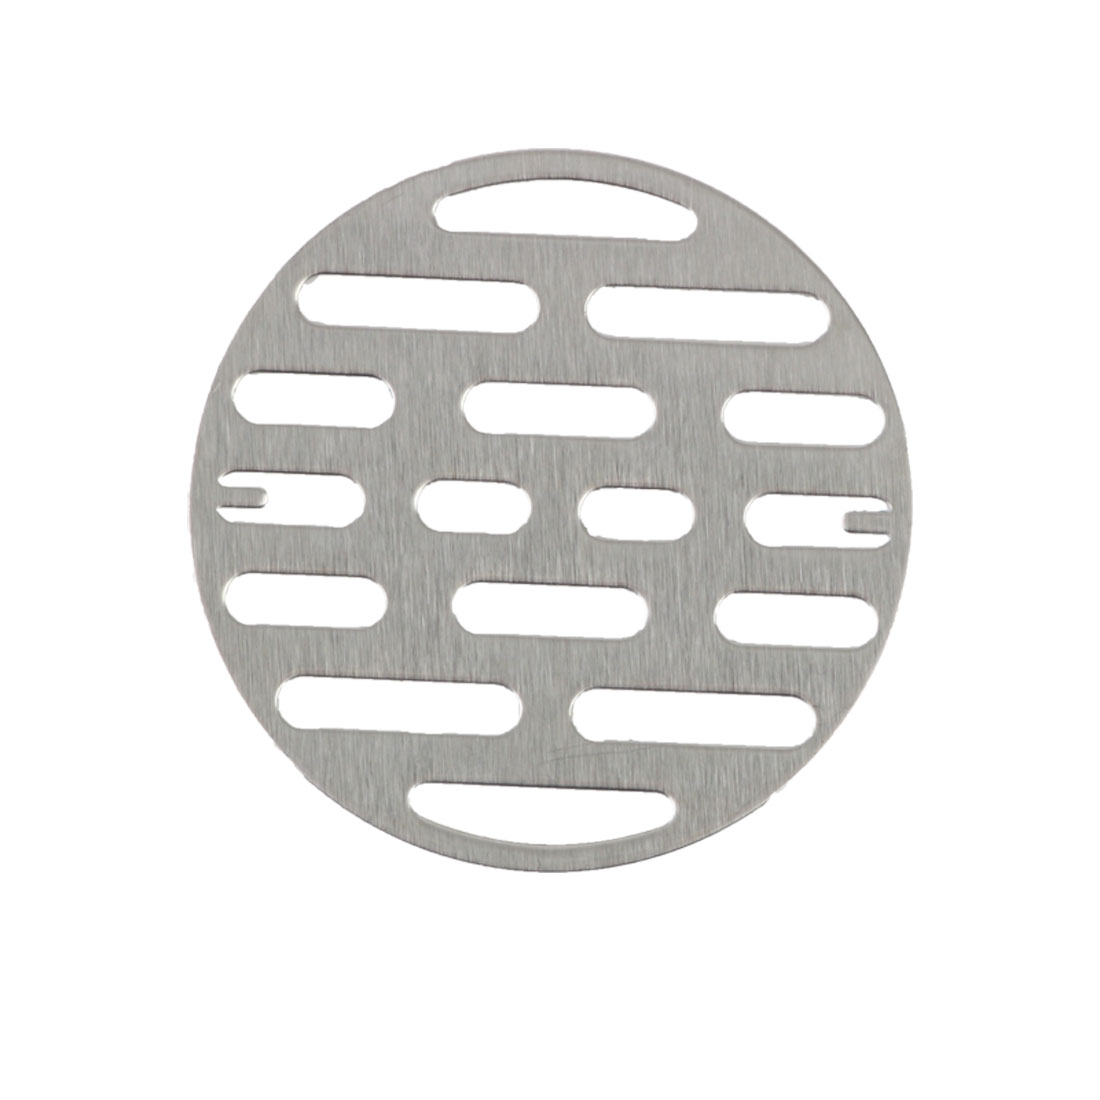 "3.15"" Snap-in Floor Drain Cover Hair Catcher Sink Filters Stopper Kitchen"